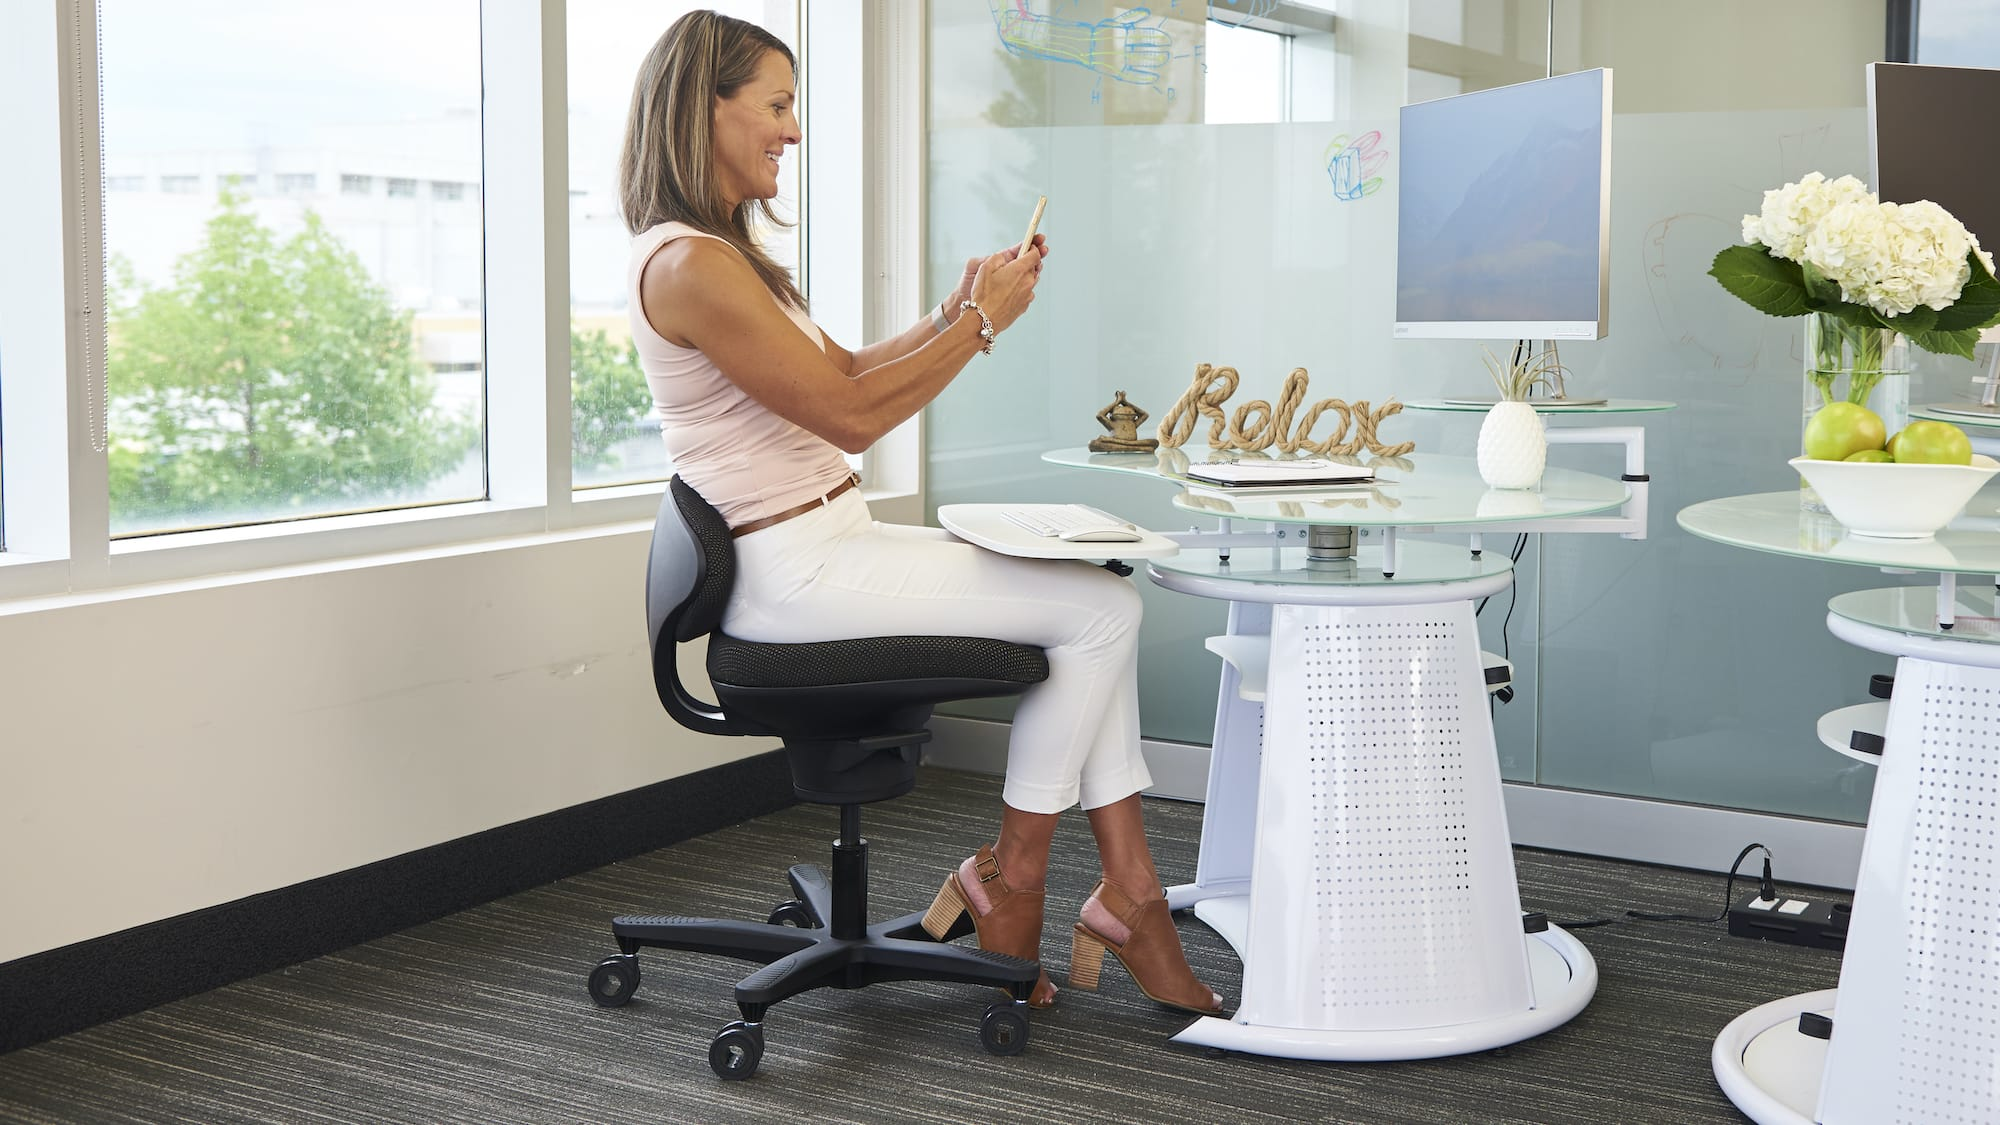 CoreChair active sitting desk chair promotes optimal sitting posture & encourages movement